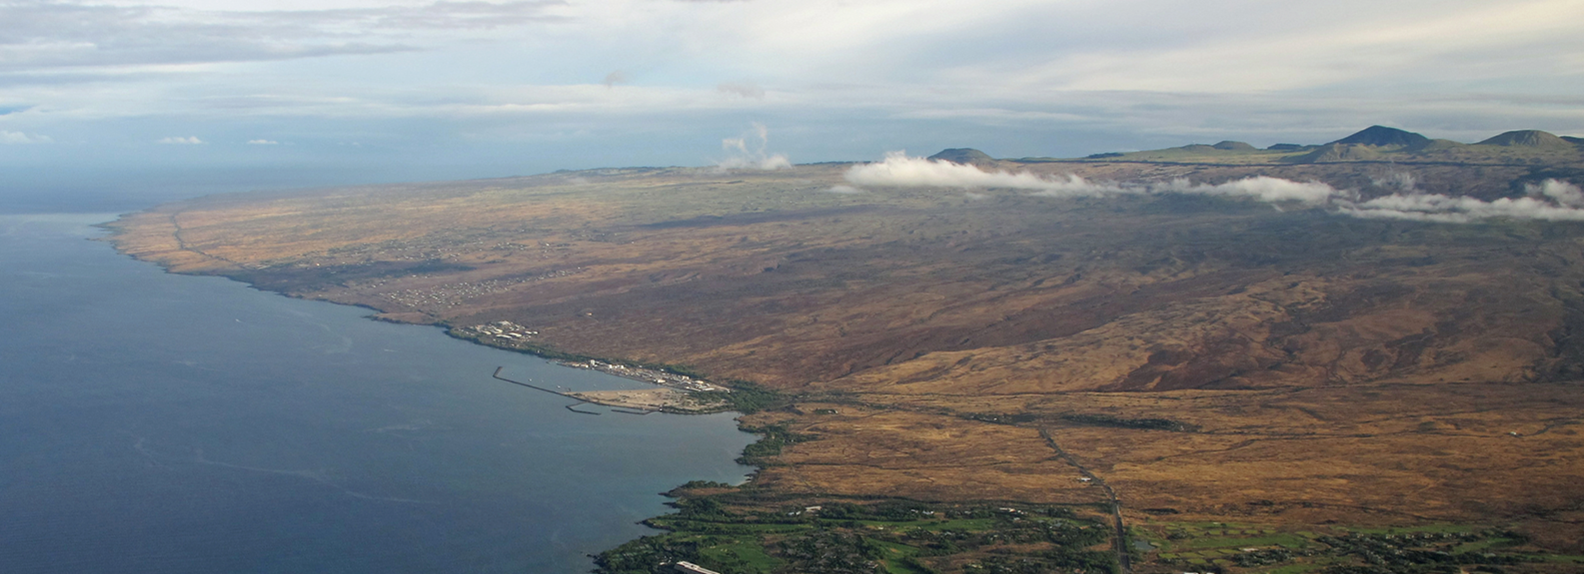 Partnerships drive efforts to protect and restore West Hawai'i's coral reefs and other nearshore ecosystems from erosion, nutrient pollution, and storm water runoff.